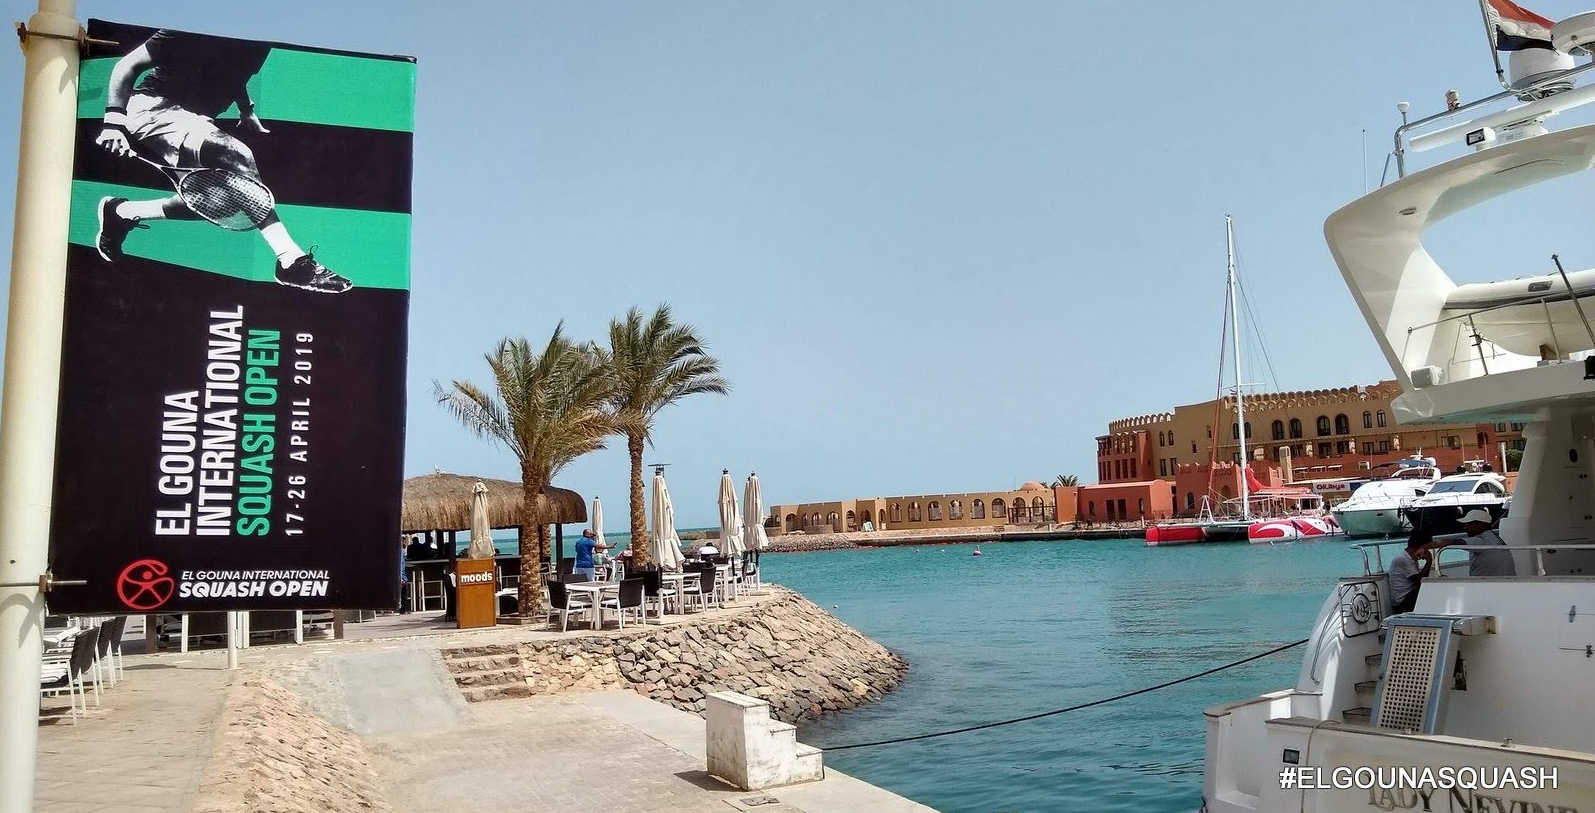 El Gouna Events in April: Jam-packed activities for all!